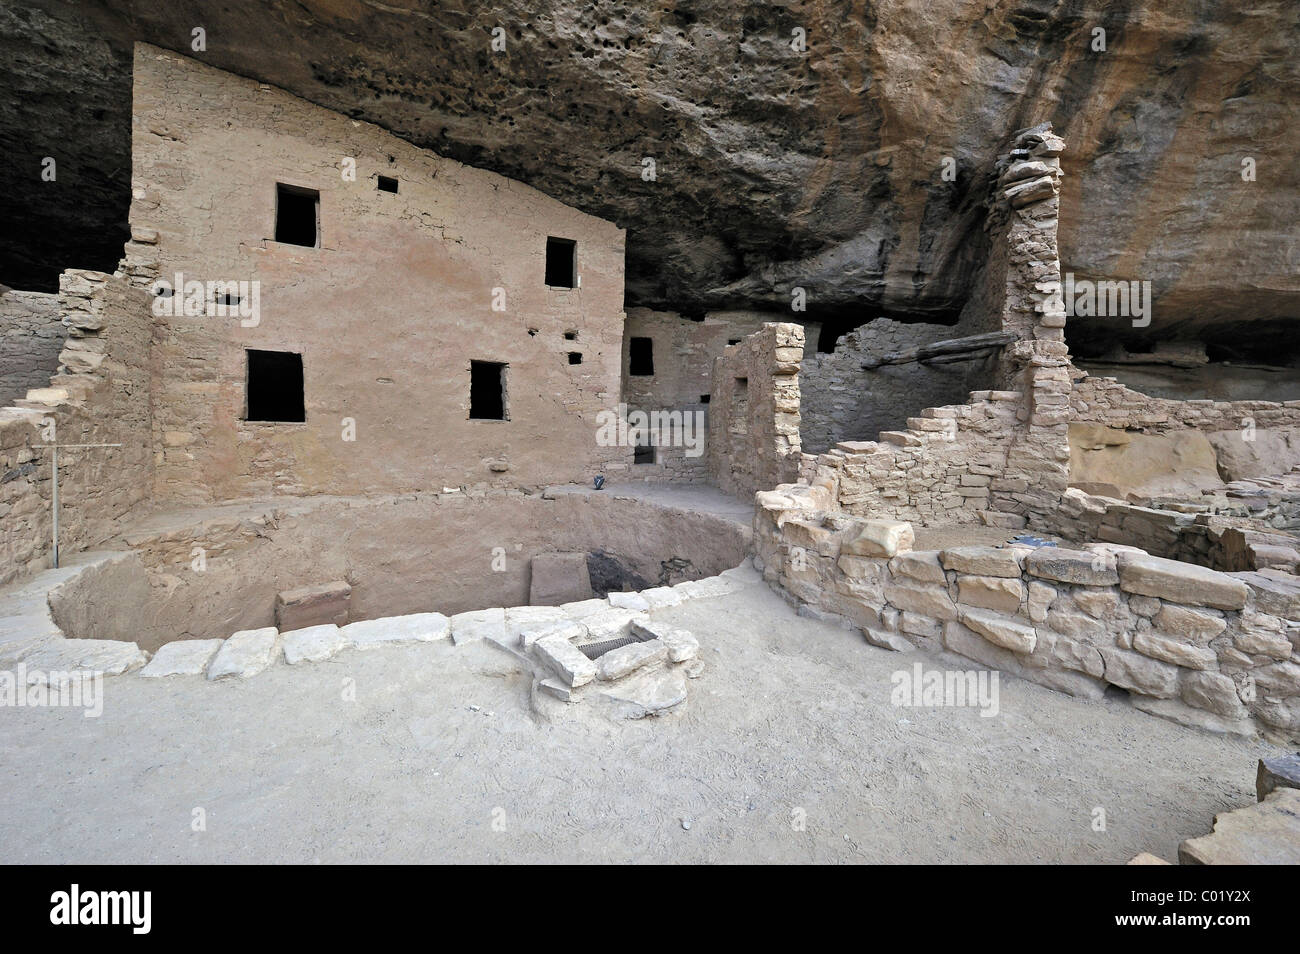 Spruce Tree House, a cliff dwelling of the Native American Indians, about 800 years old, Mesa Verde National Park - Stock Image